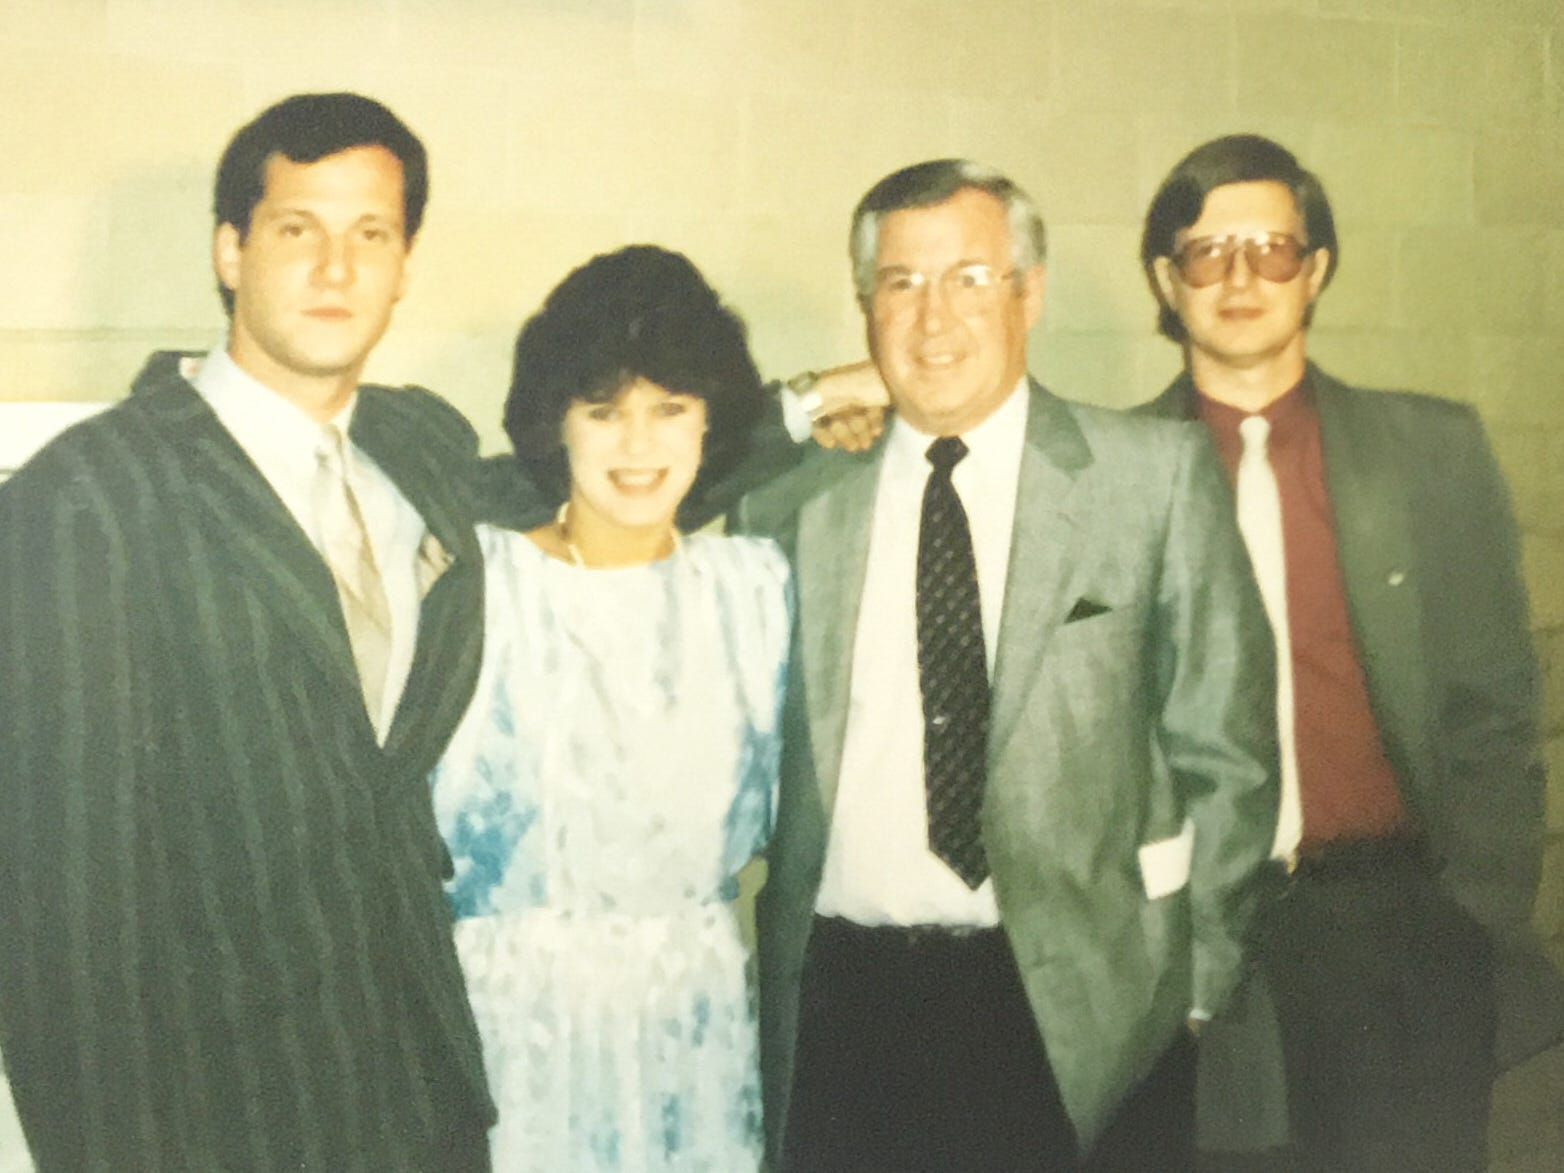 Joe Crozier, with children (left to right) Jamie, Erin, and Shayne from his first marriage in front of Joe's Amerks Hall of Fame display at the War Memorial. Crozier was part of inaugural class of 1986.